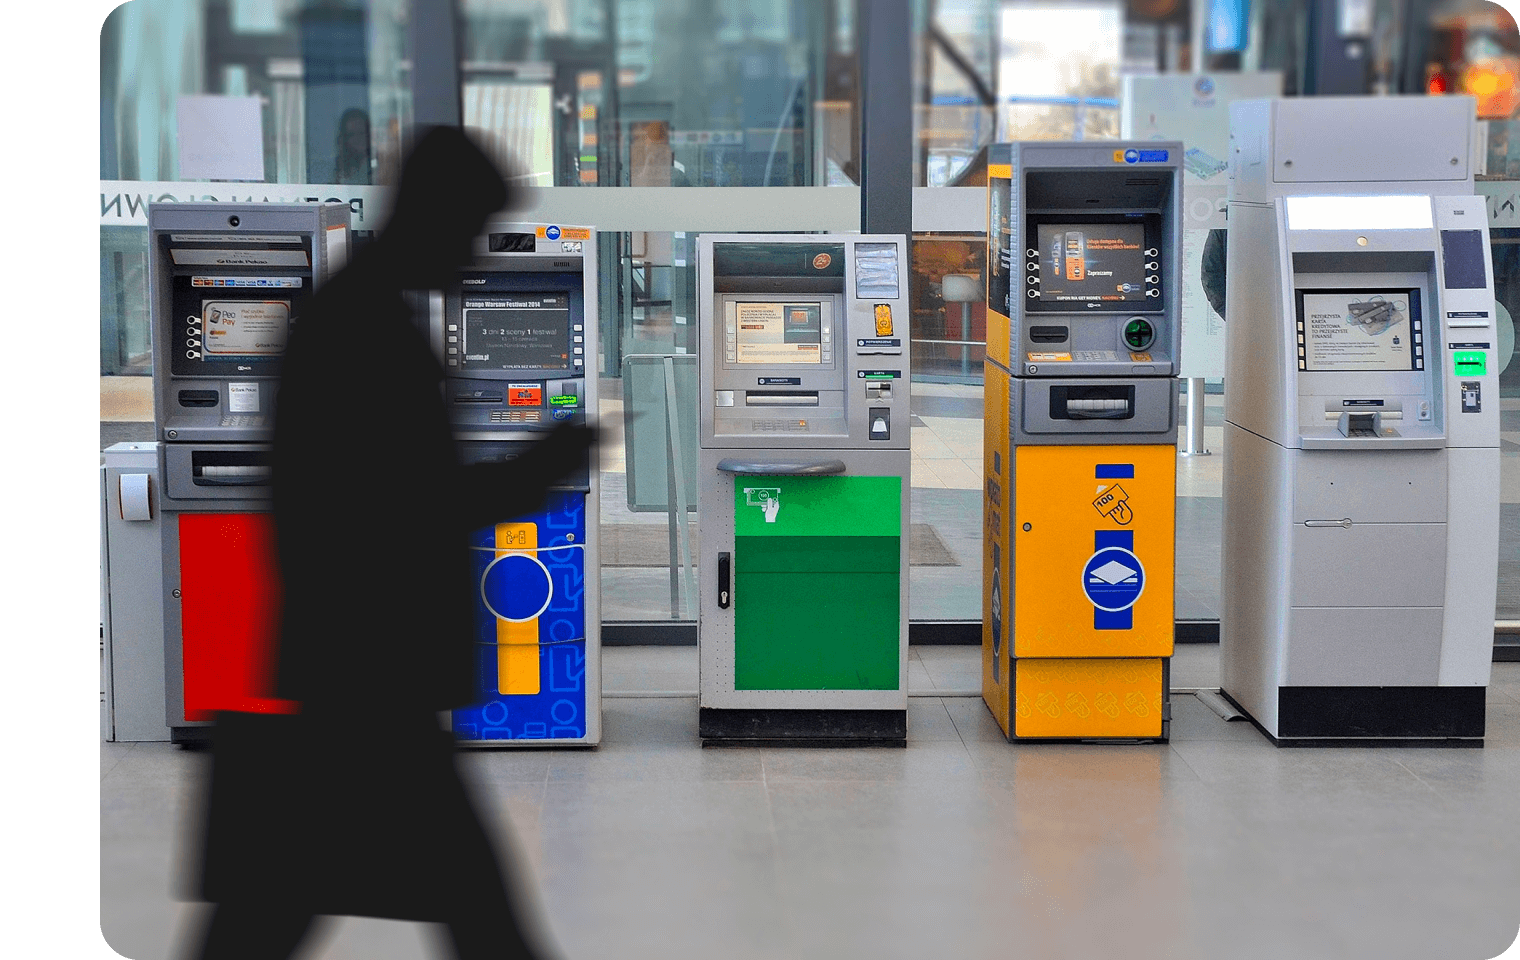 atms-image-3.png